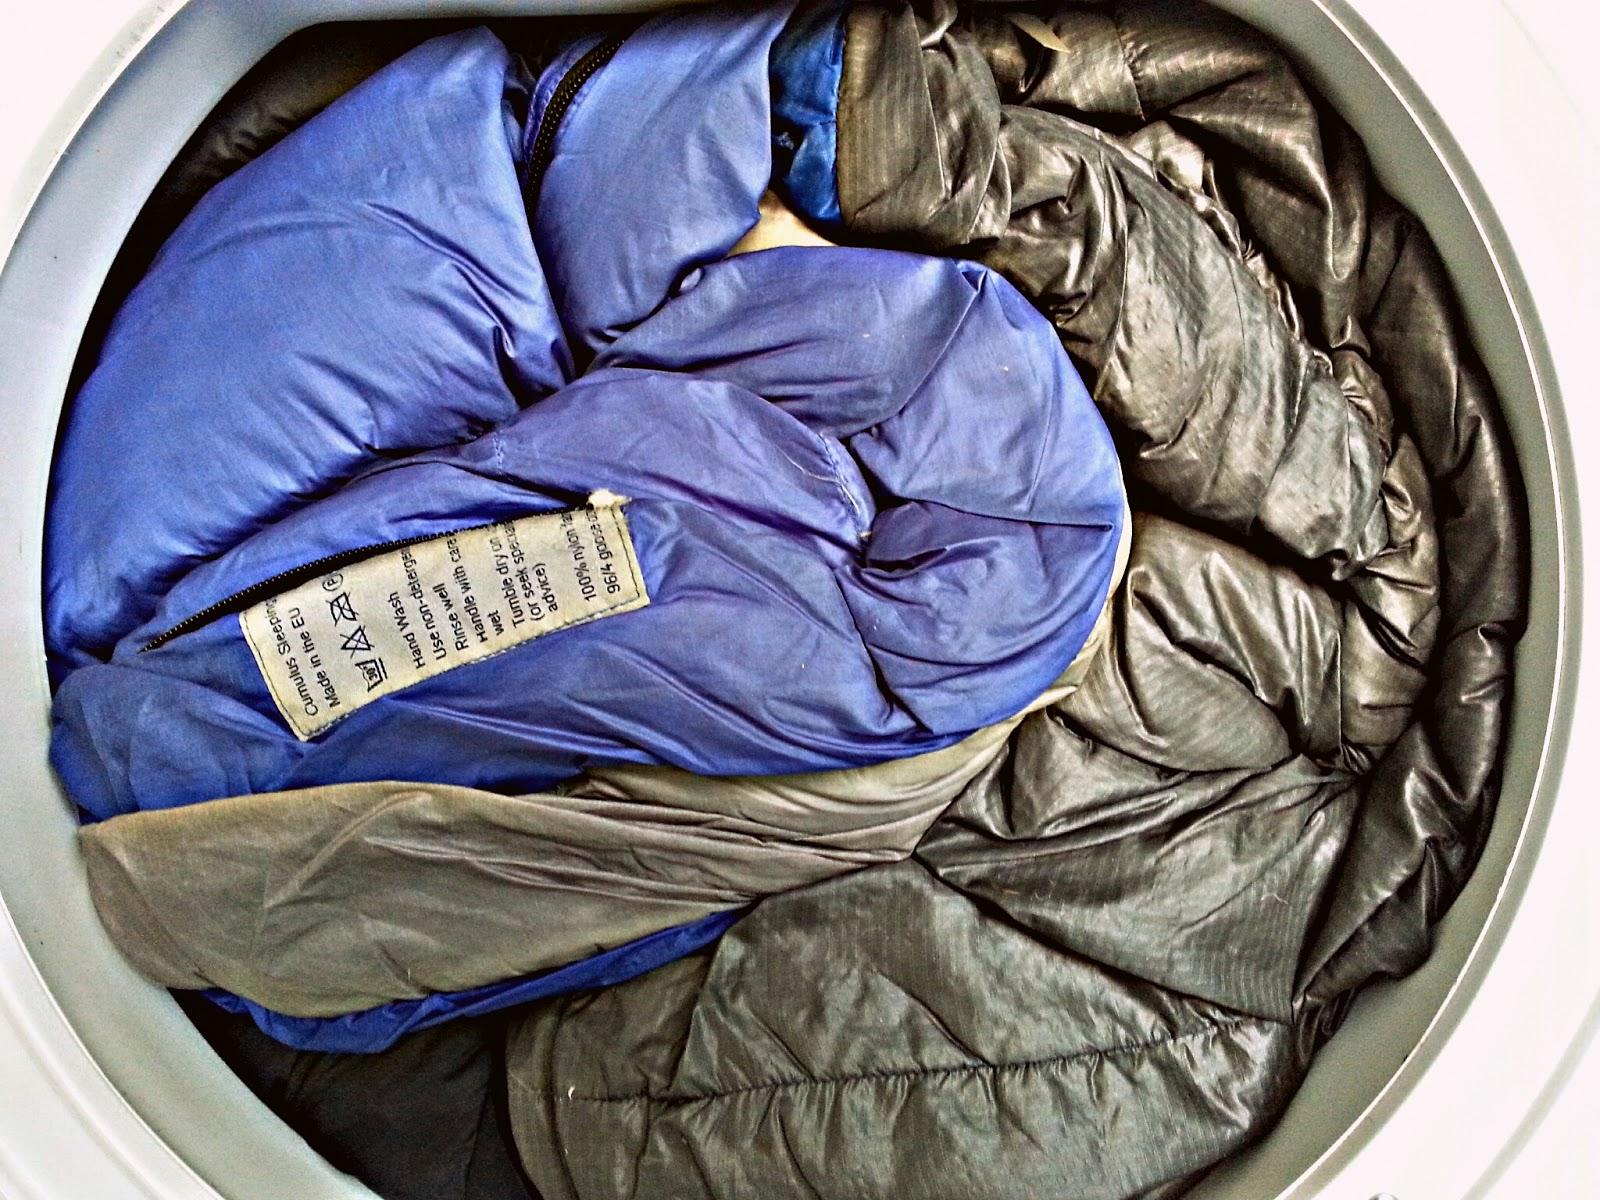 How to Wash Sleeping Bags for Camping